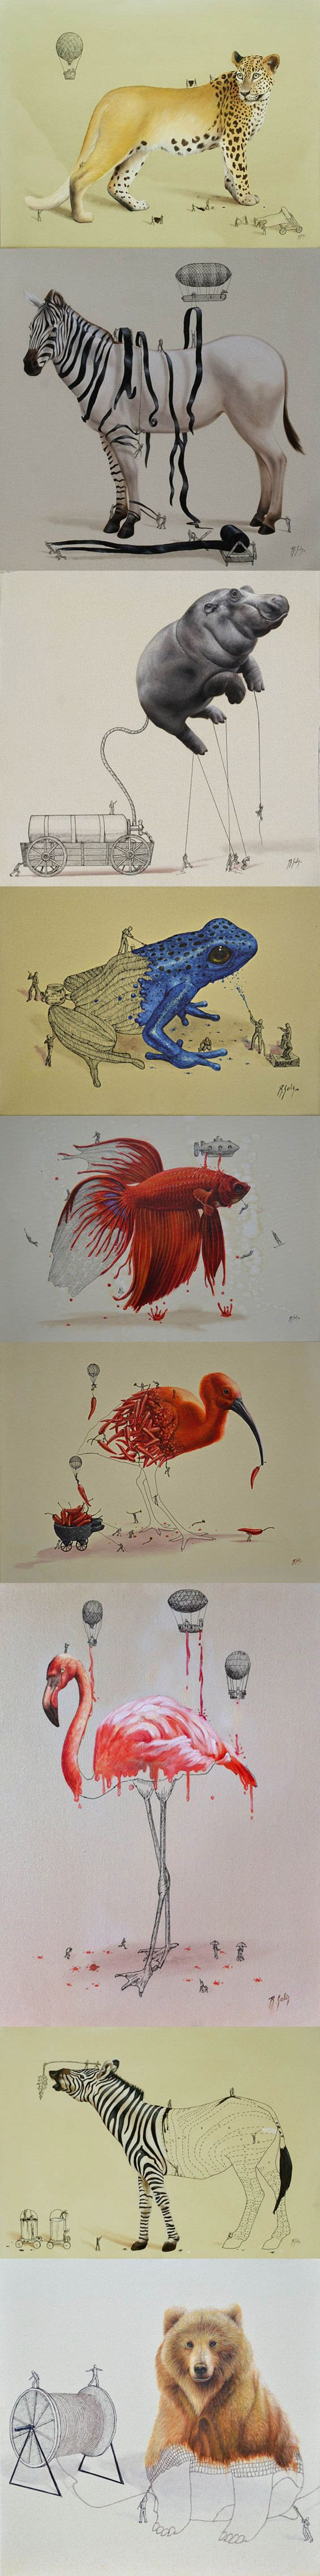 "The achievements of Ricardo Solís including this brilliant series image below which is a kind of exploration of the ""construction"" of different animals."